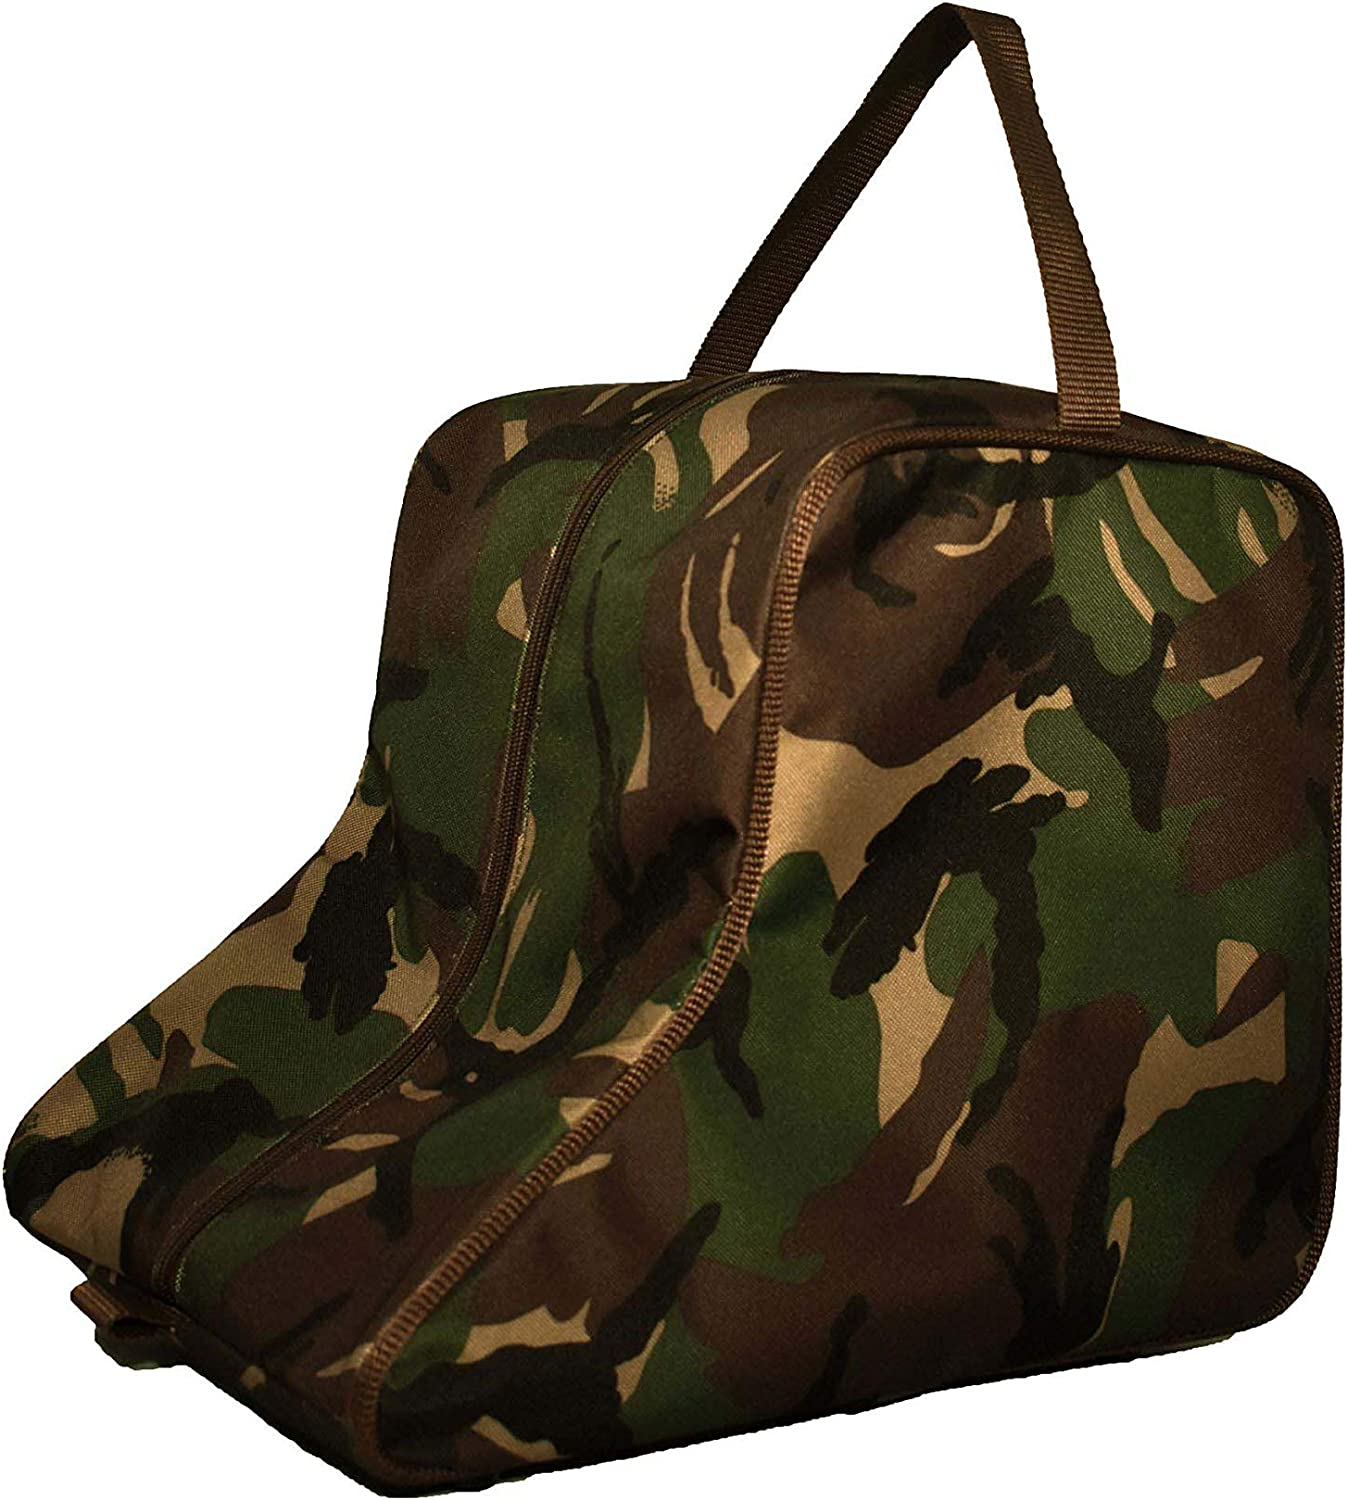 Wine Size 12 Concept Covers Walking Hiking Boot Bag Storage Carrier Height 30cm Made in Britain